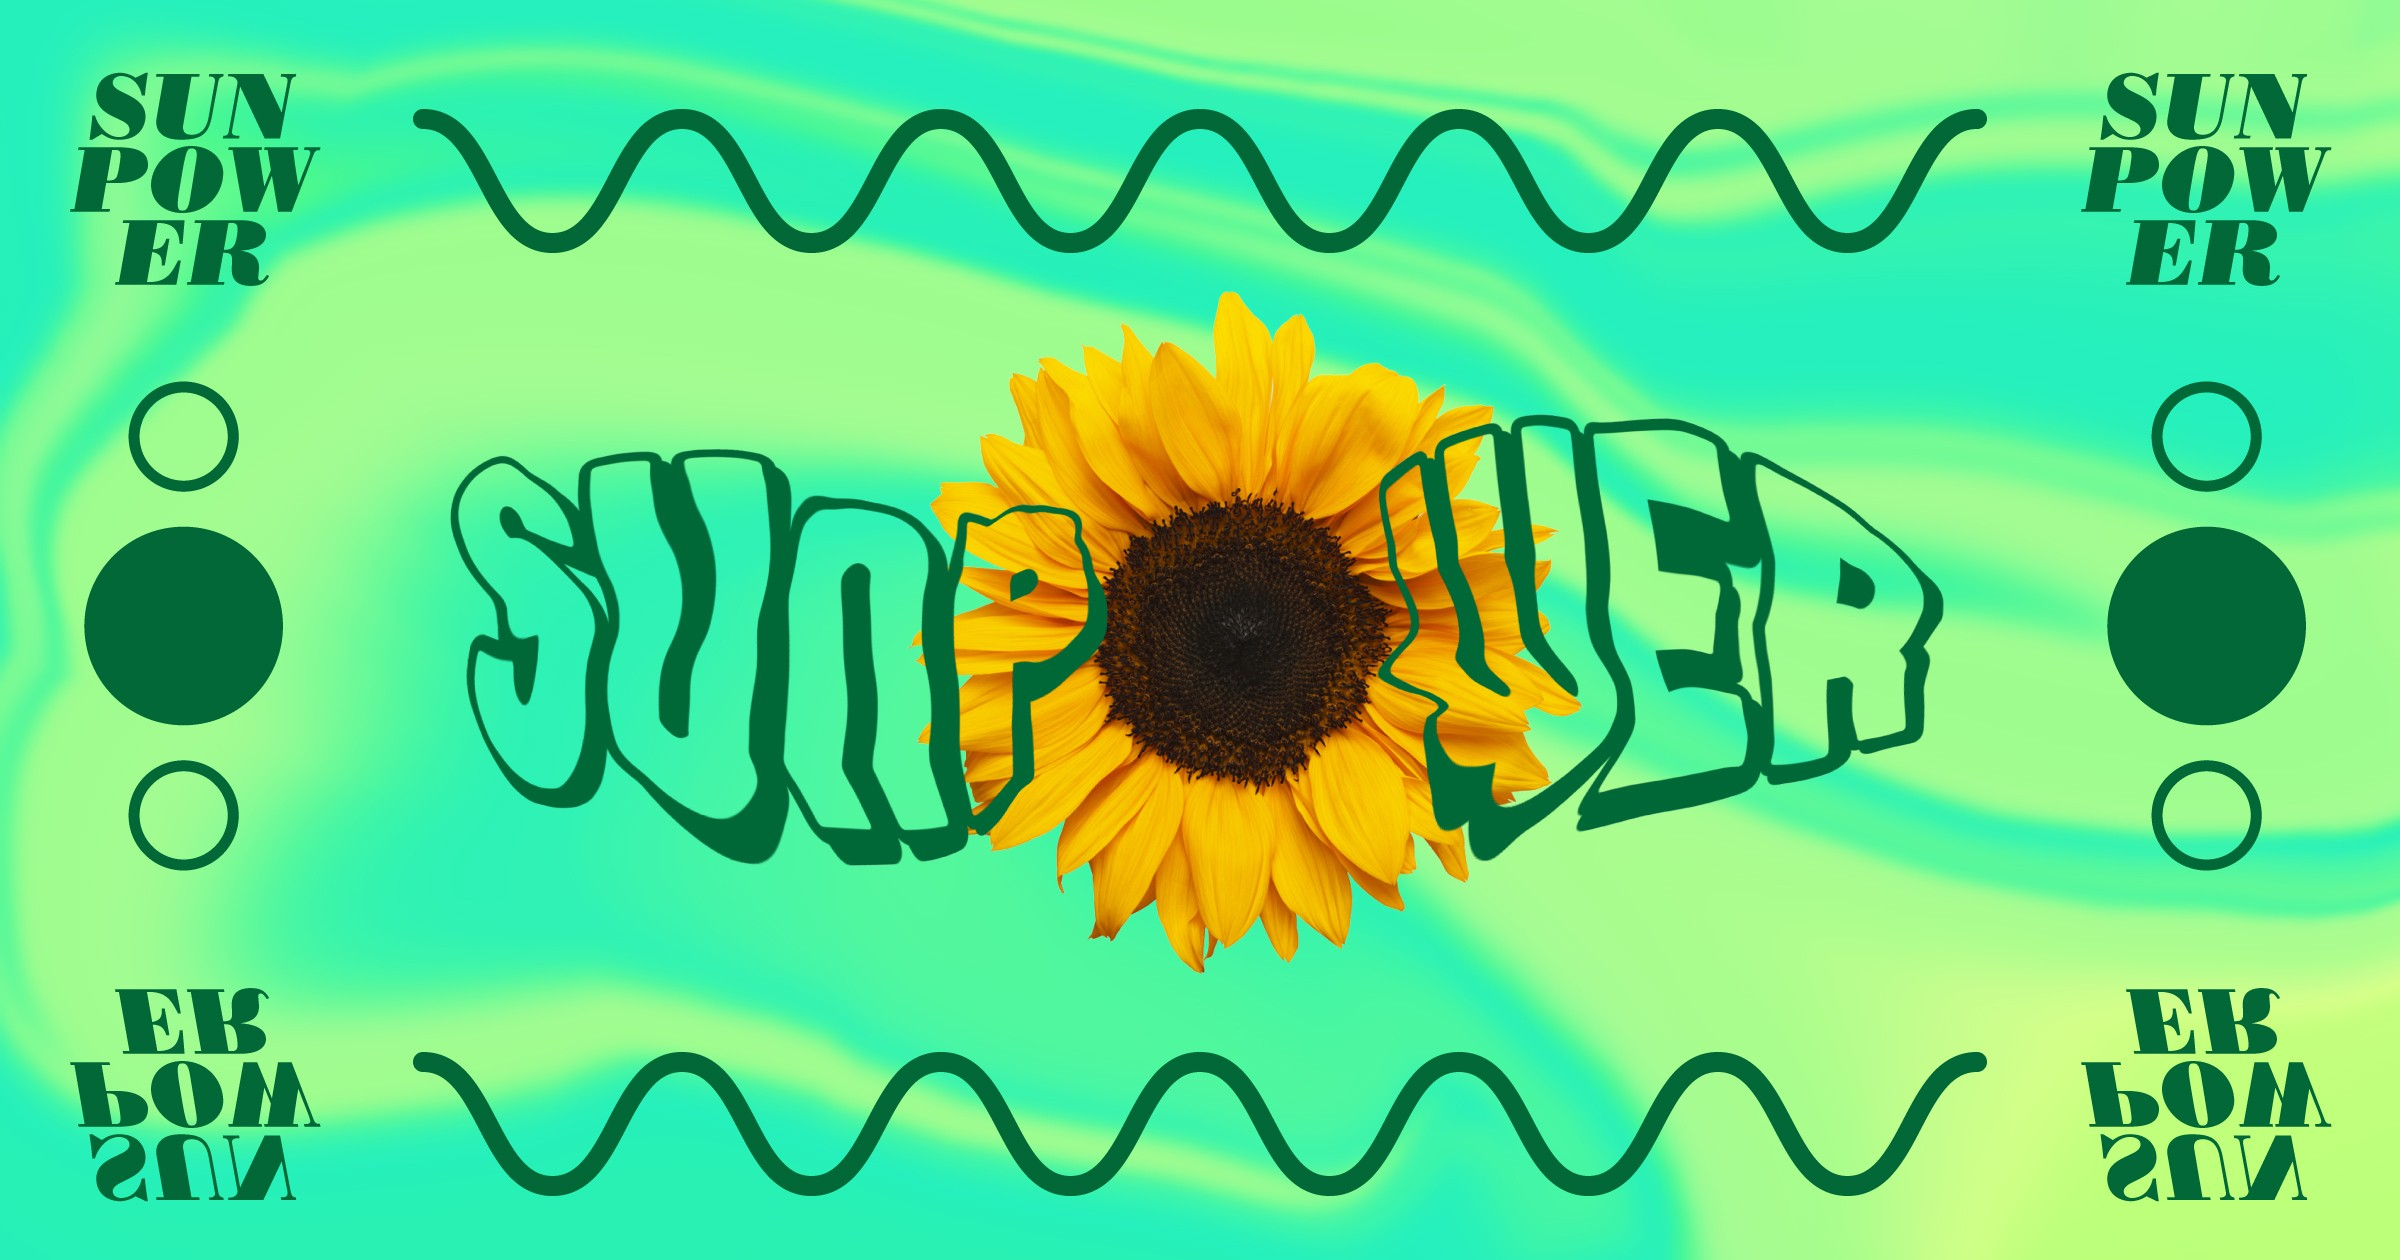 Joyful Learning In Kc Sunflowers And Summer Manual Guide